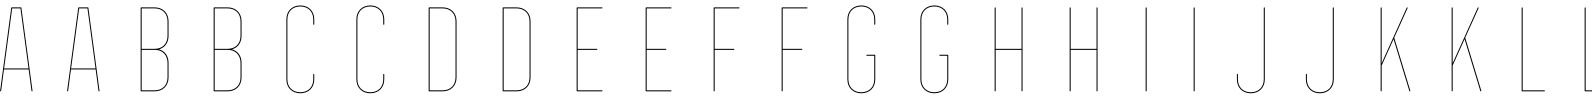 Frontage Condensed Line Font